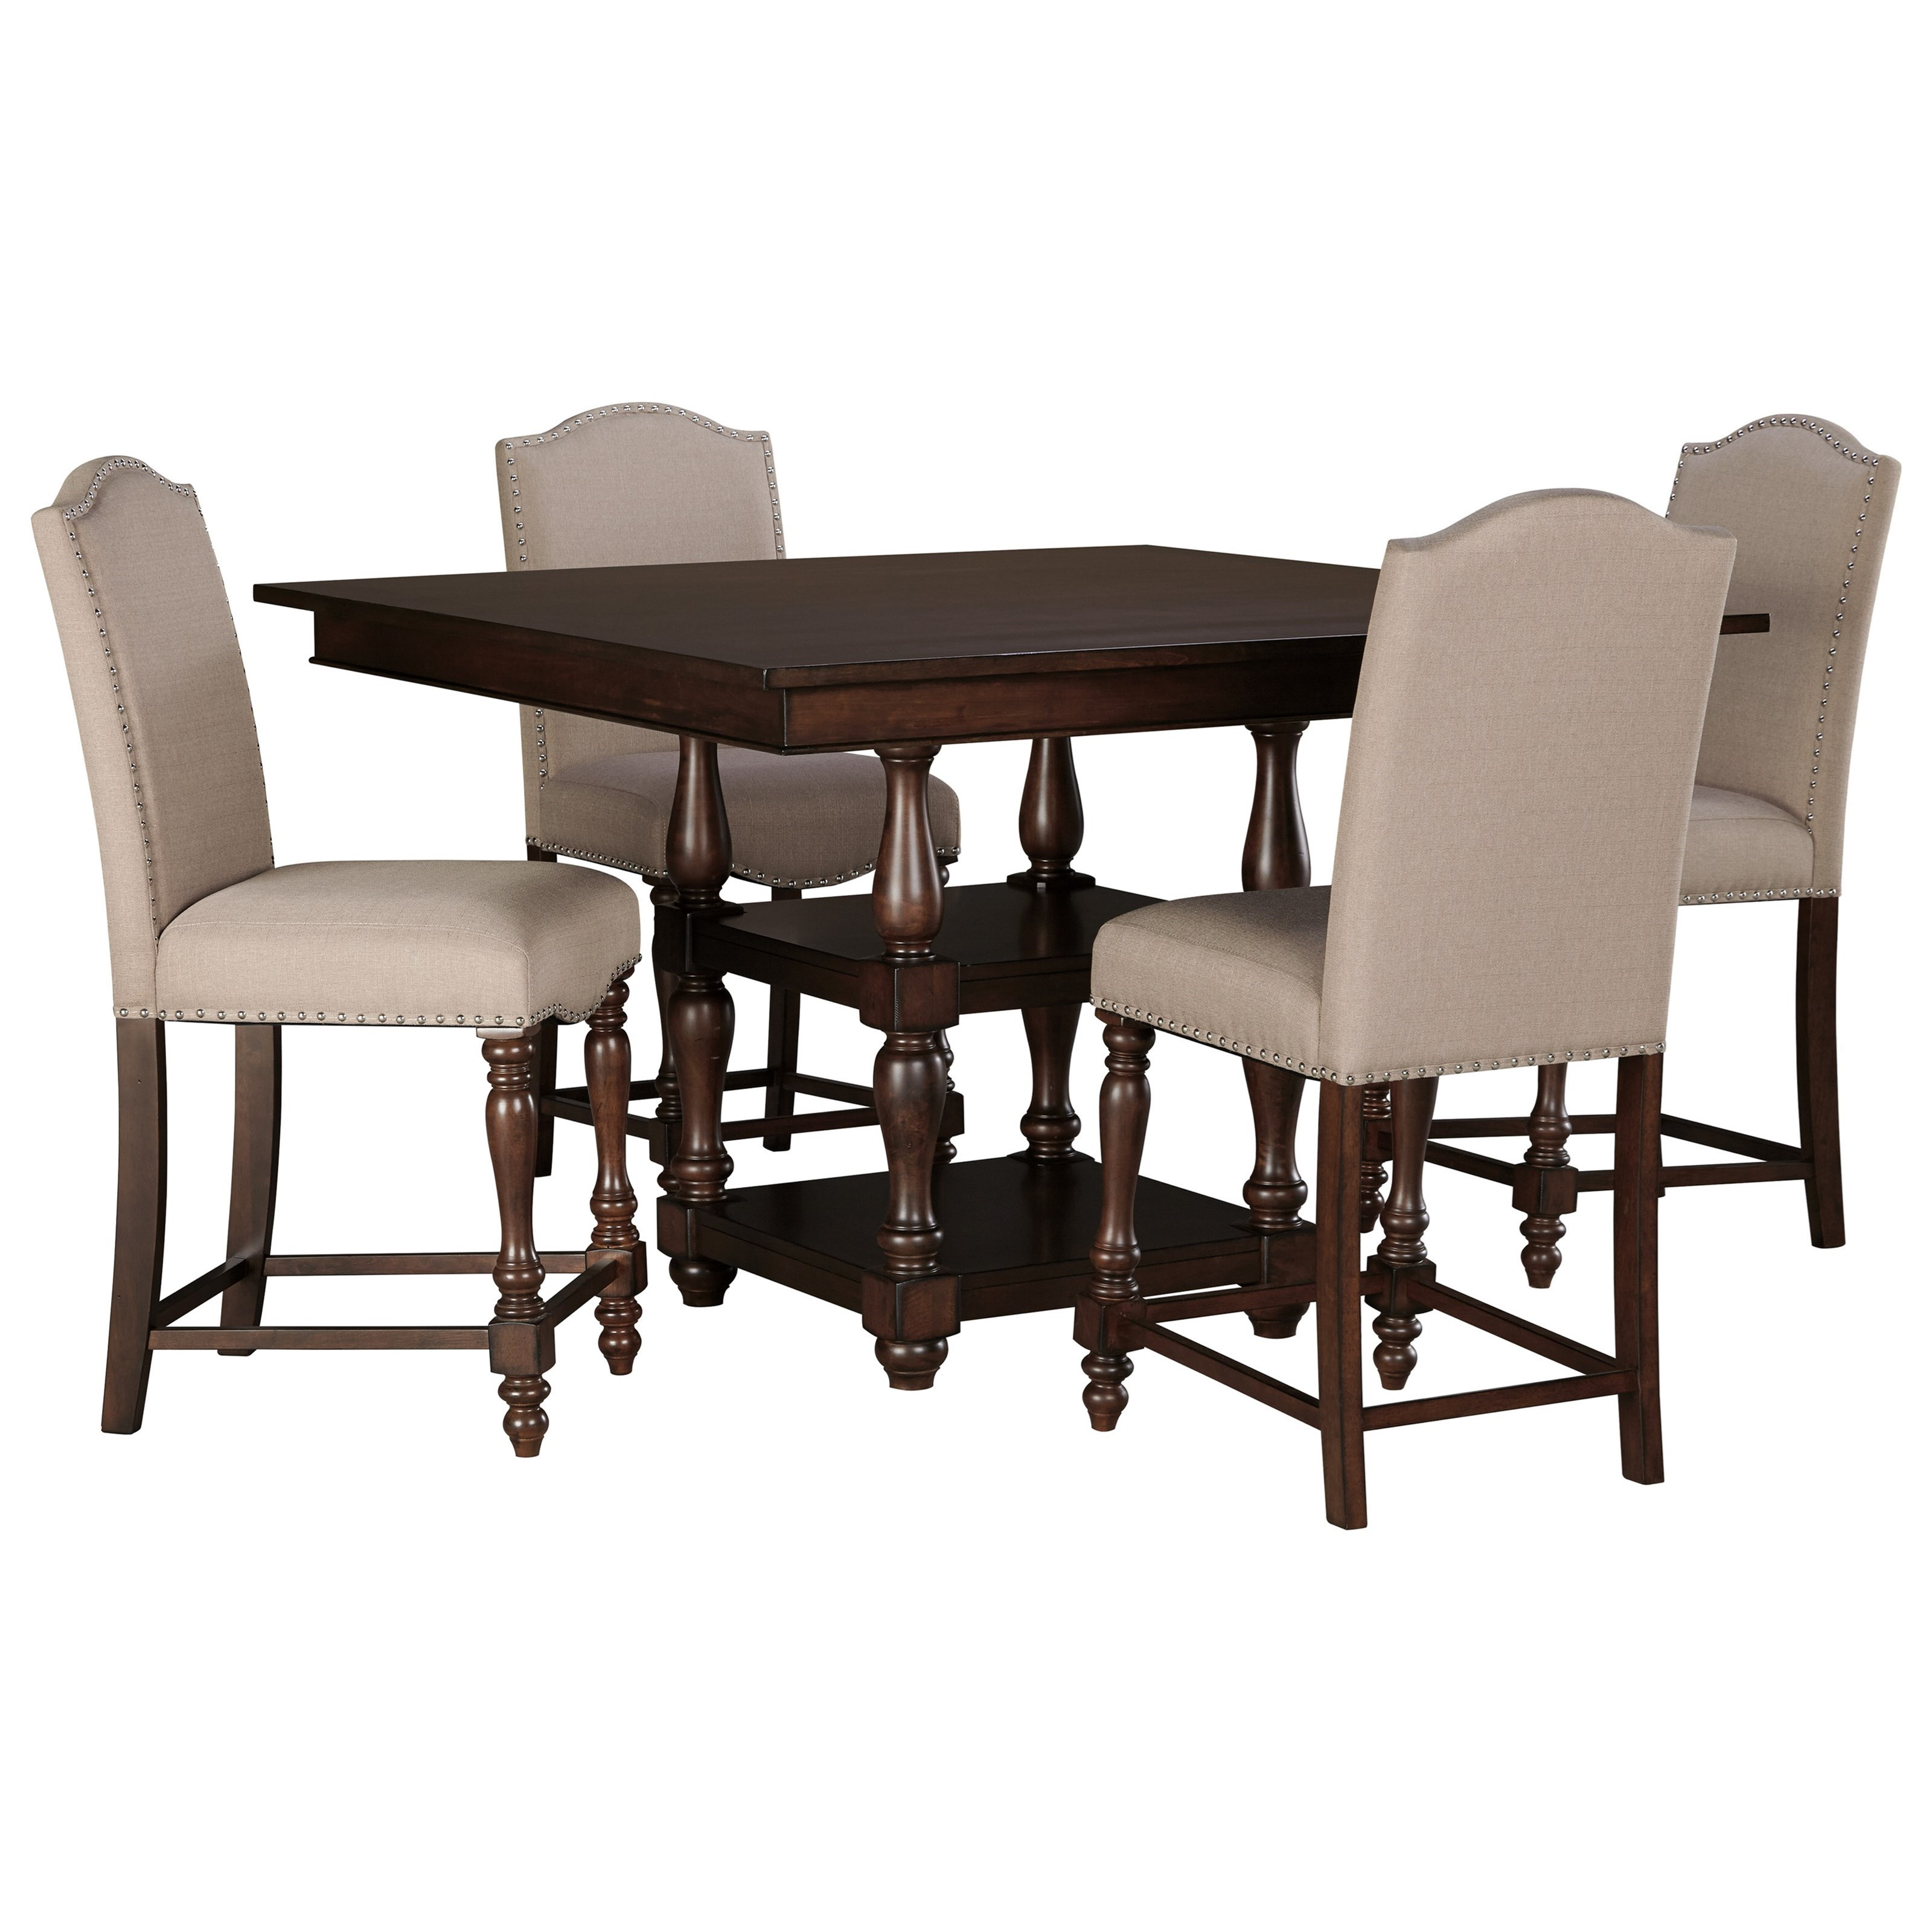 Signature Design by Ashley Baxenburg 5-Piece Square Dining Room Counter Table Set - Item Number: D506-32+4x124